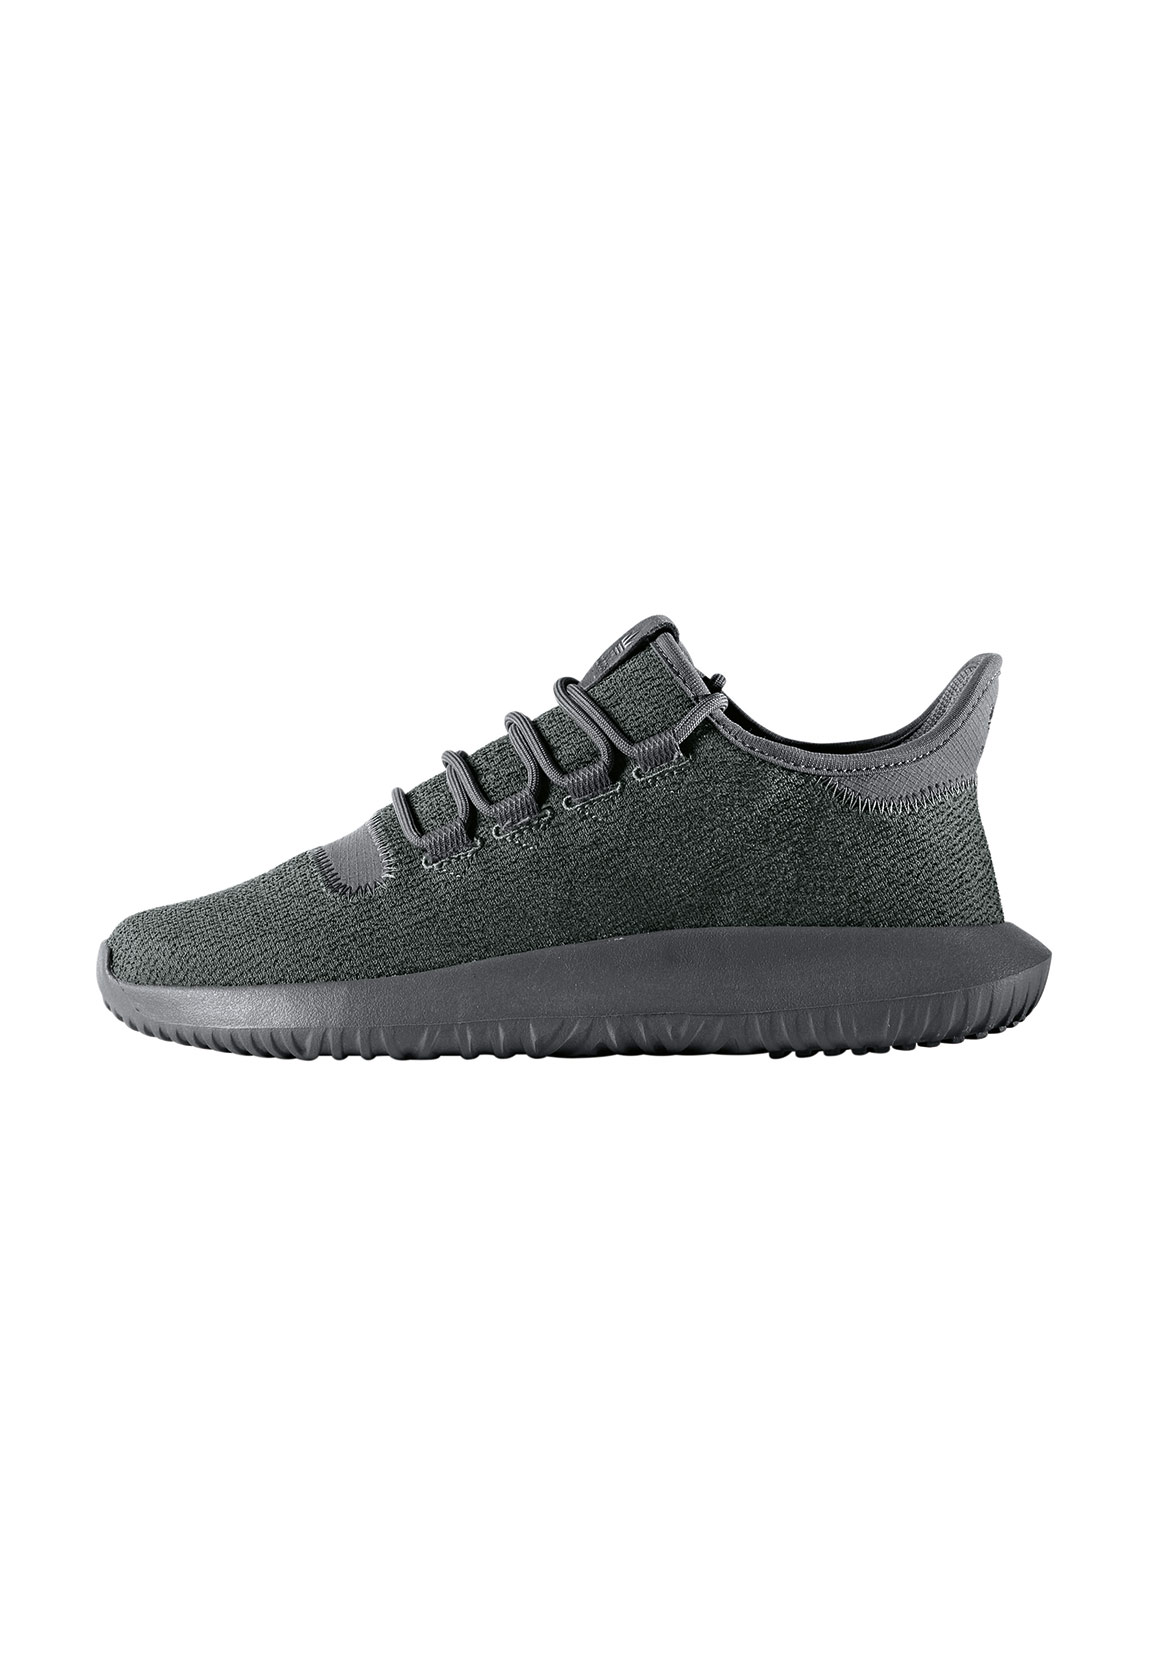 adidas sneaker damen tubular shadow w by9741 grau schuhe damen. Black Bedroom Furniture Sets. Home Design Ideas